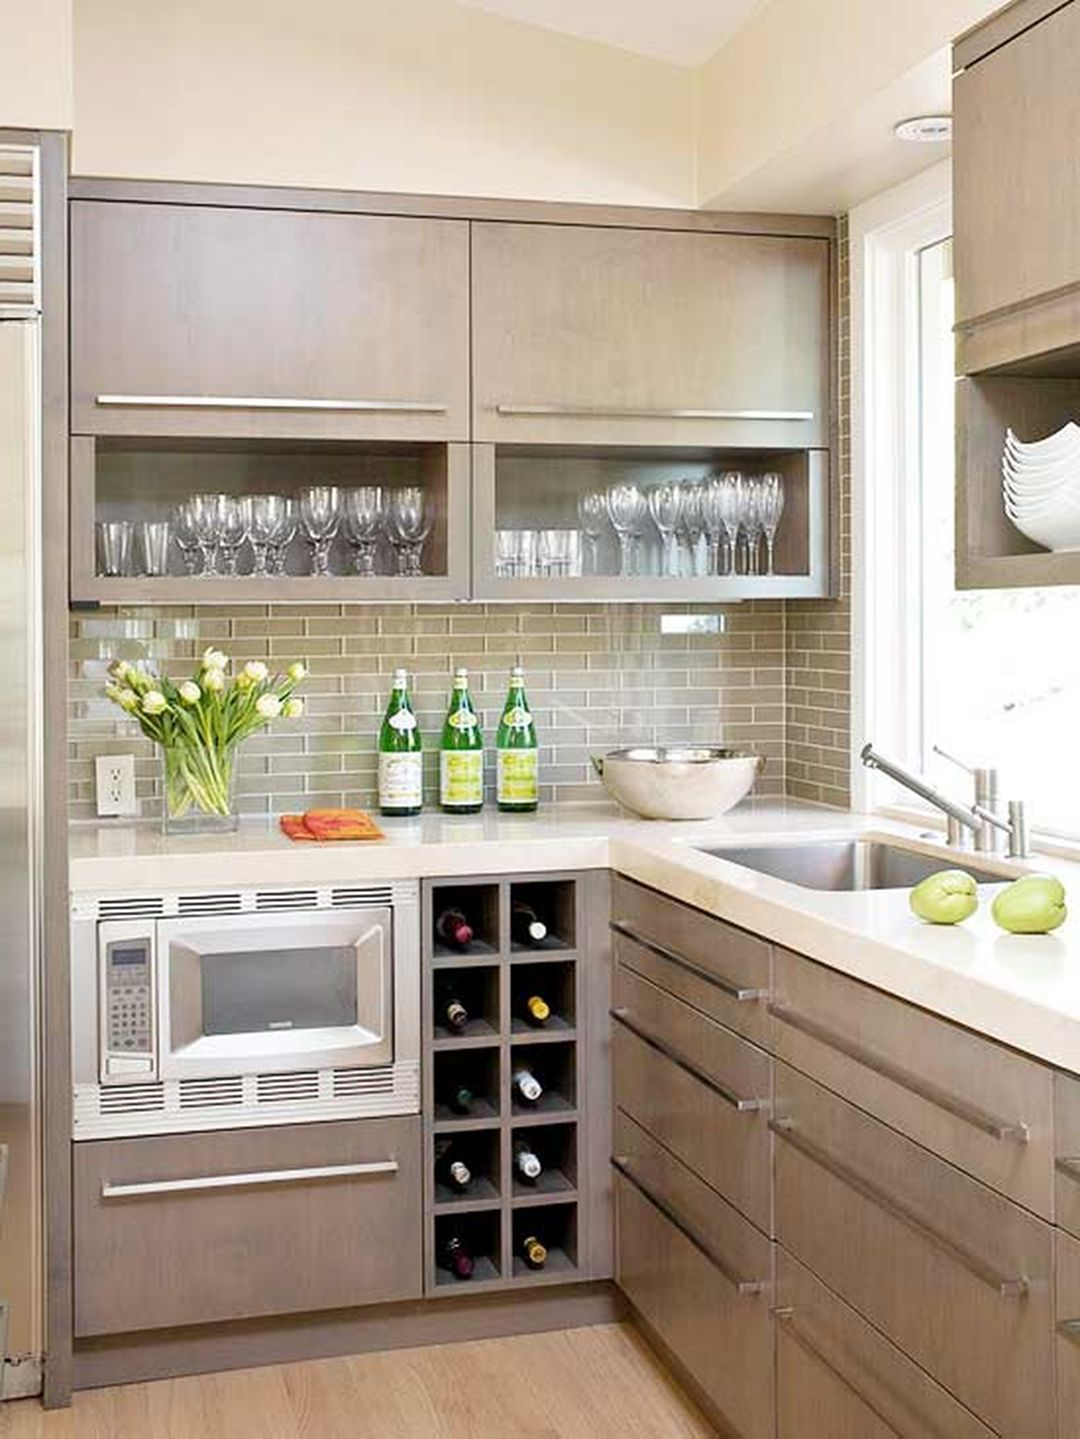 Contemporary Kitchen Design For Small Es Mycoffeepot Org